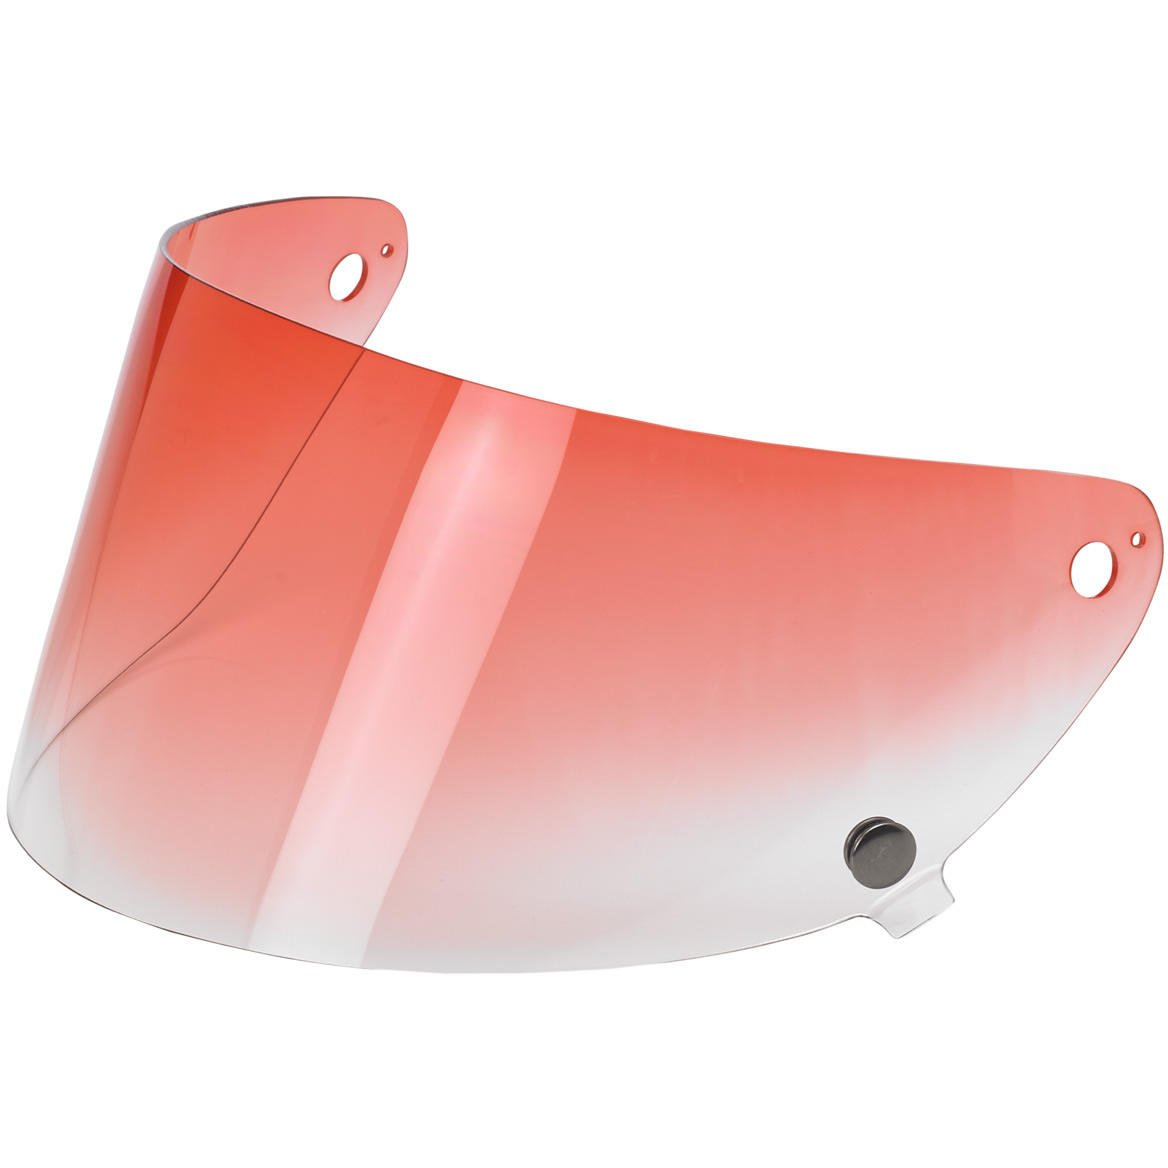 Biltwell Gringo S Flat Shield - Red Gradient